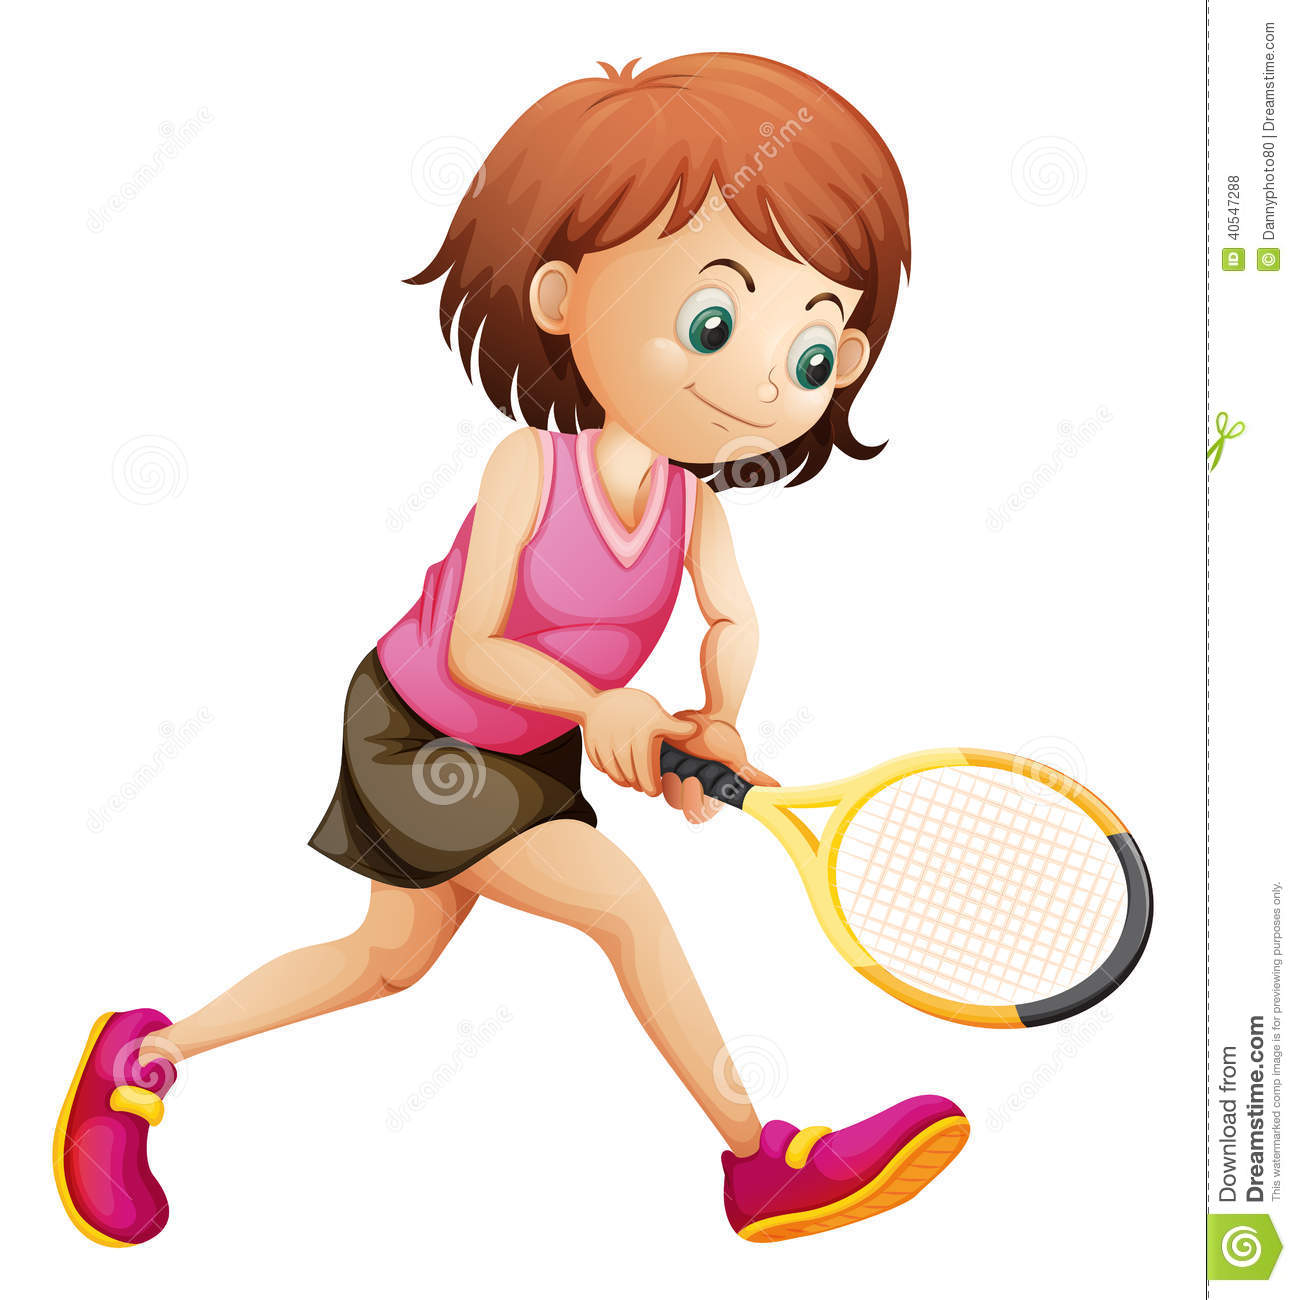 a cute little girl playing tennis stock vector image Cartoon Tennis Racket Clip Art Tennis Player Clip Art Border